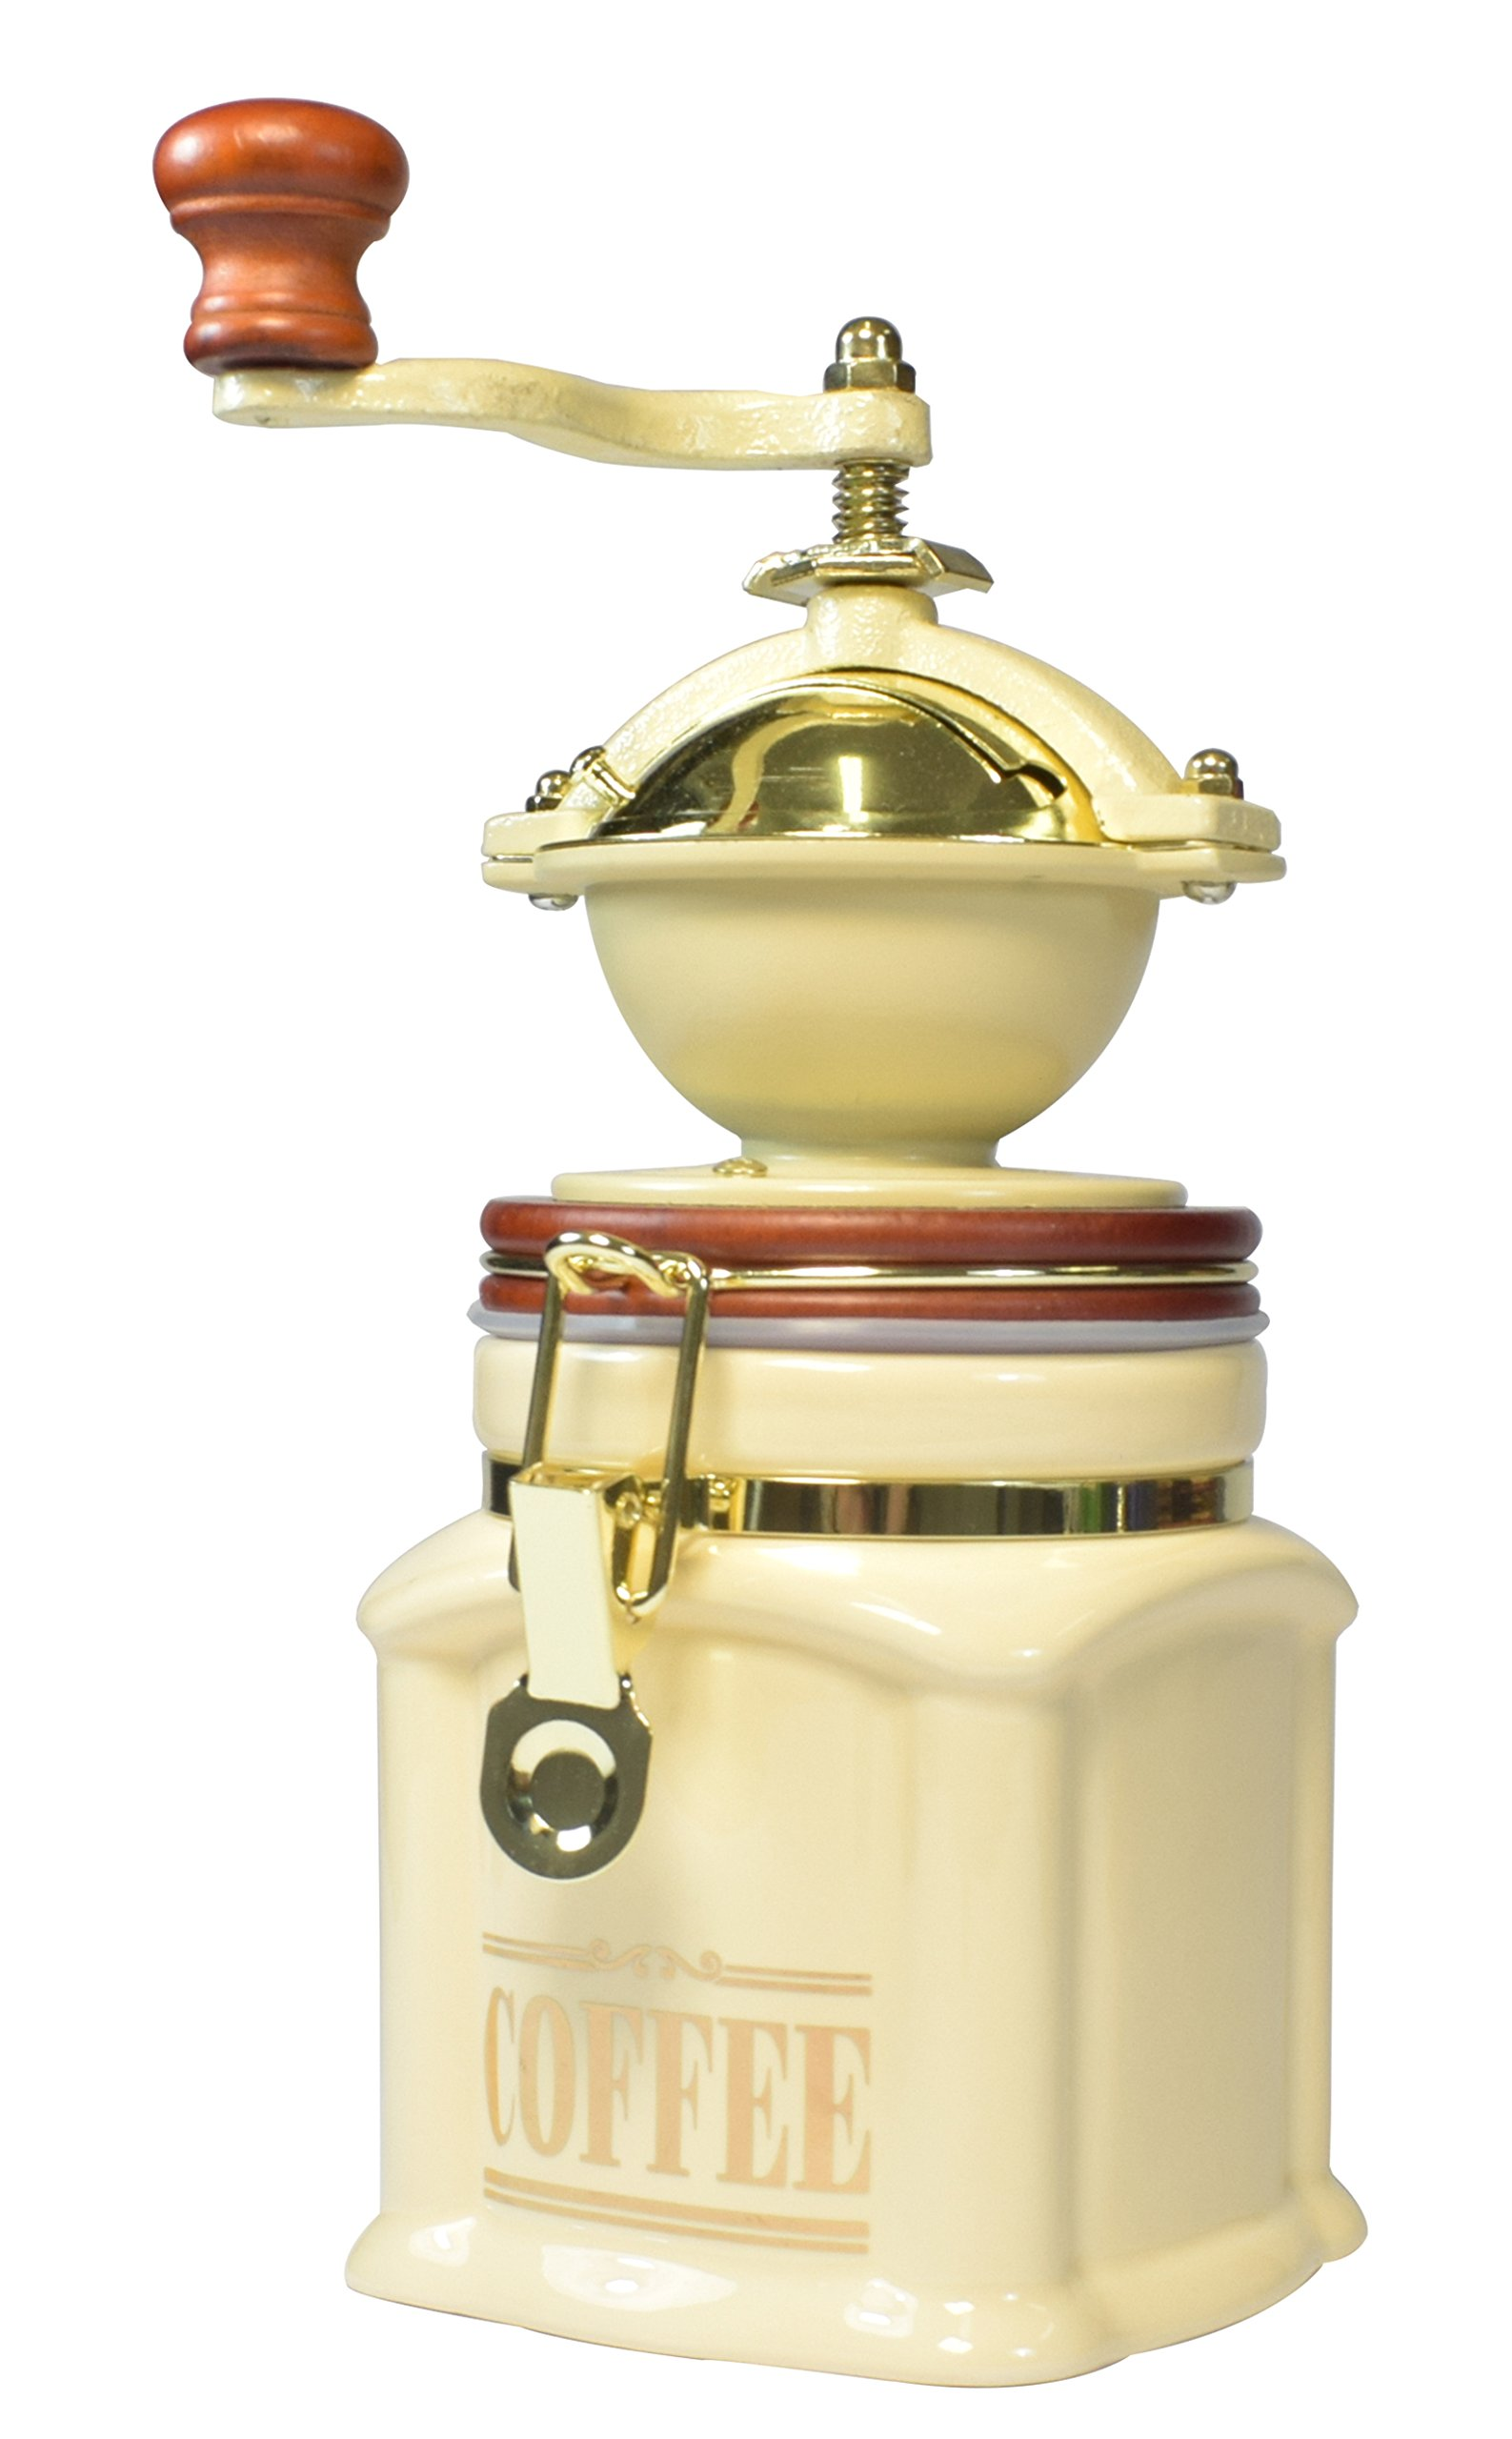 Bisetti 61531 Vivalto Coffee Grinder, Cream by bisetti (Image #1)